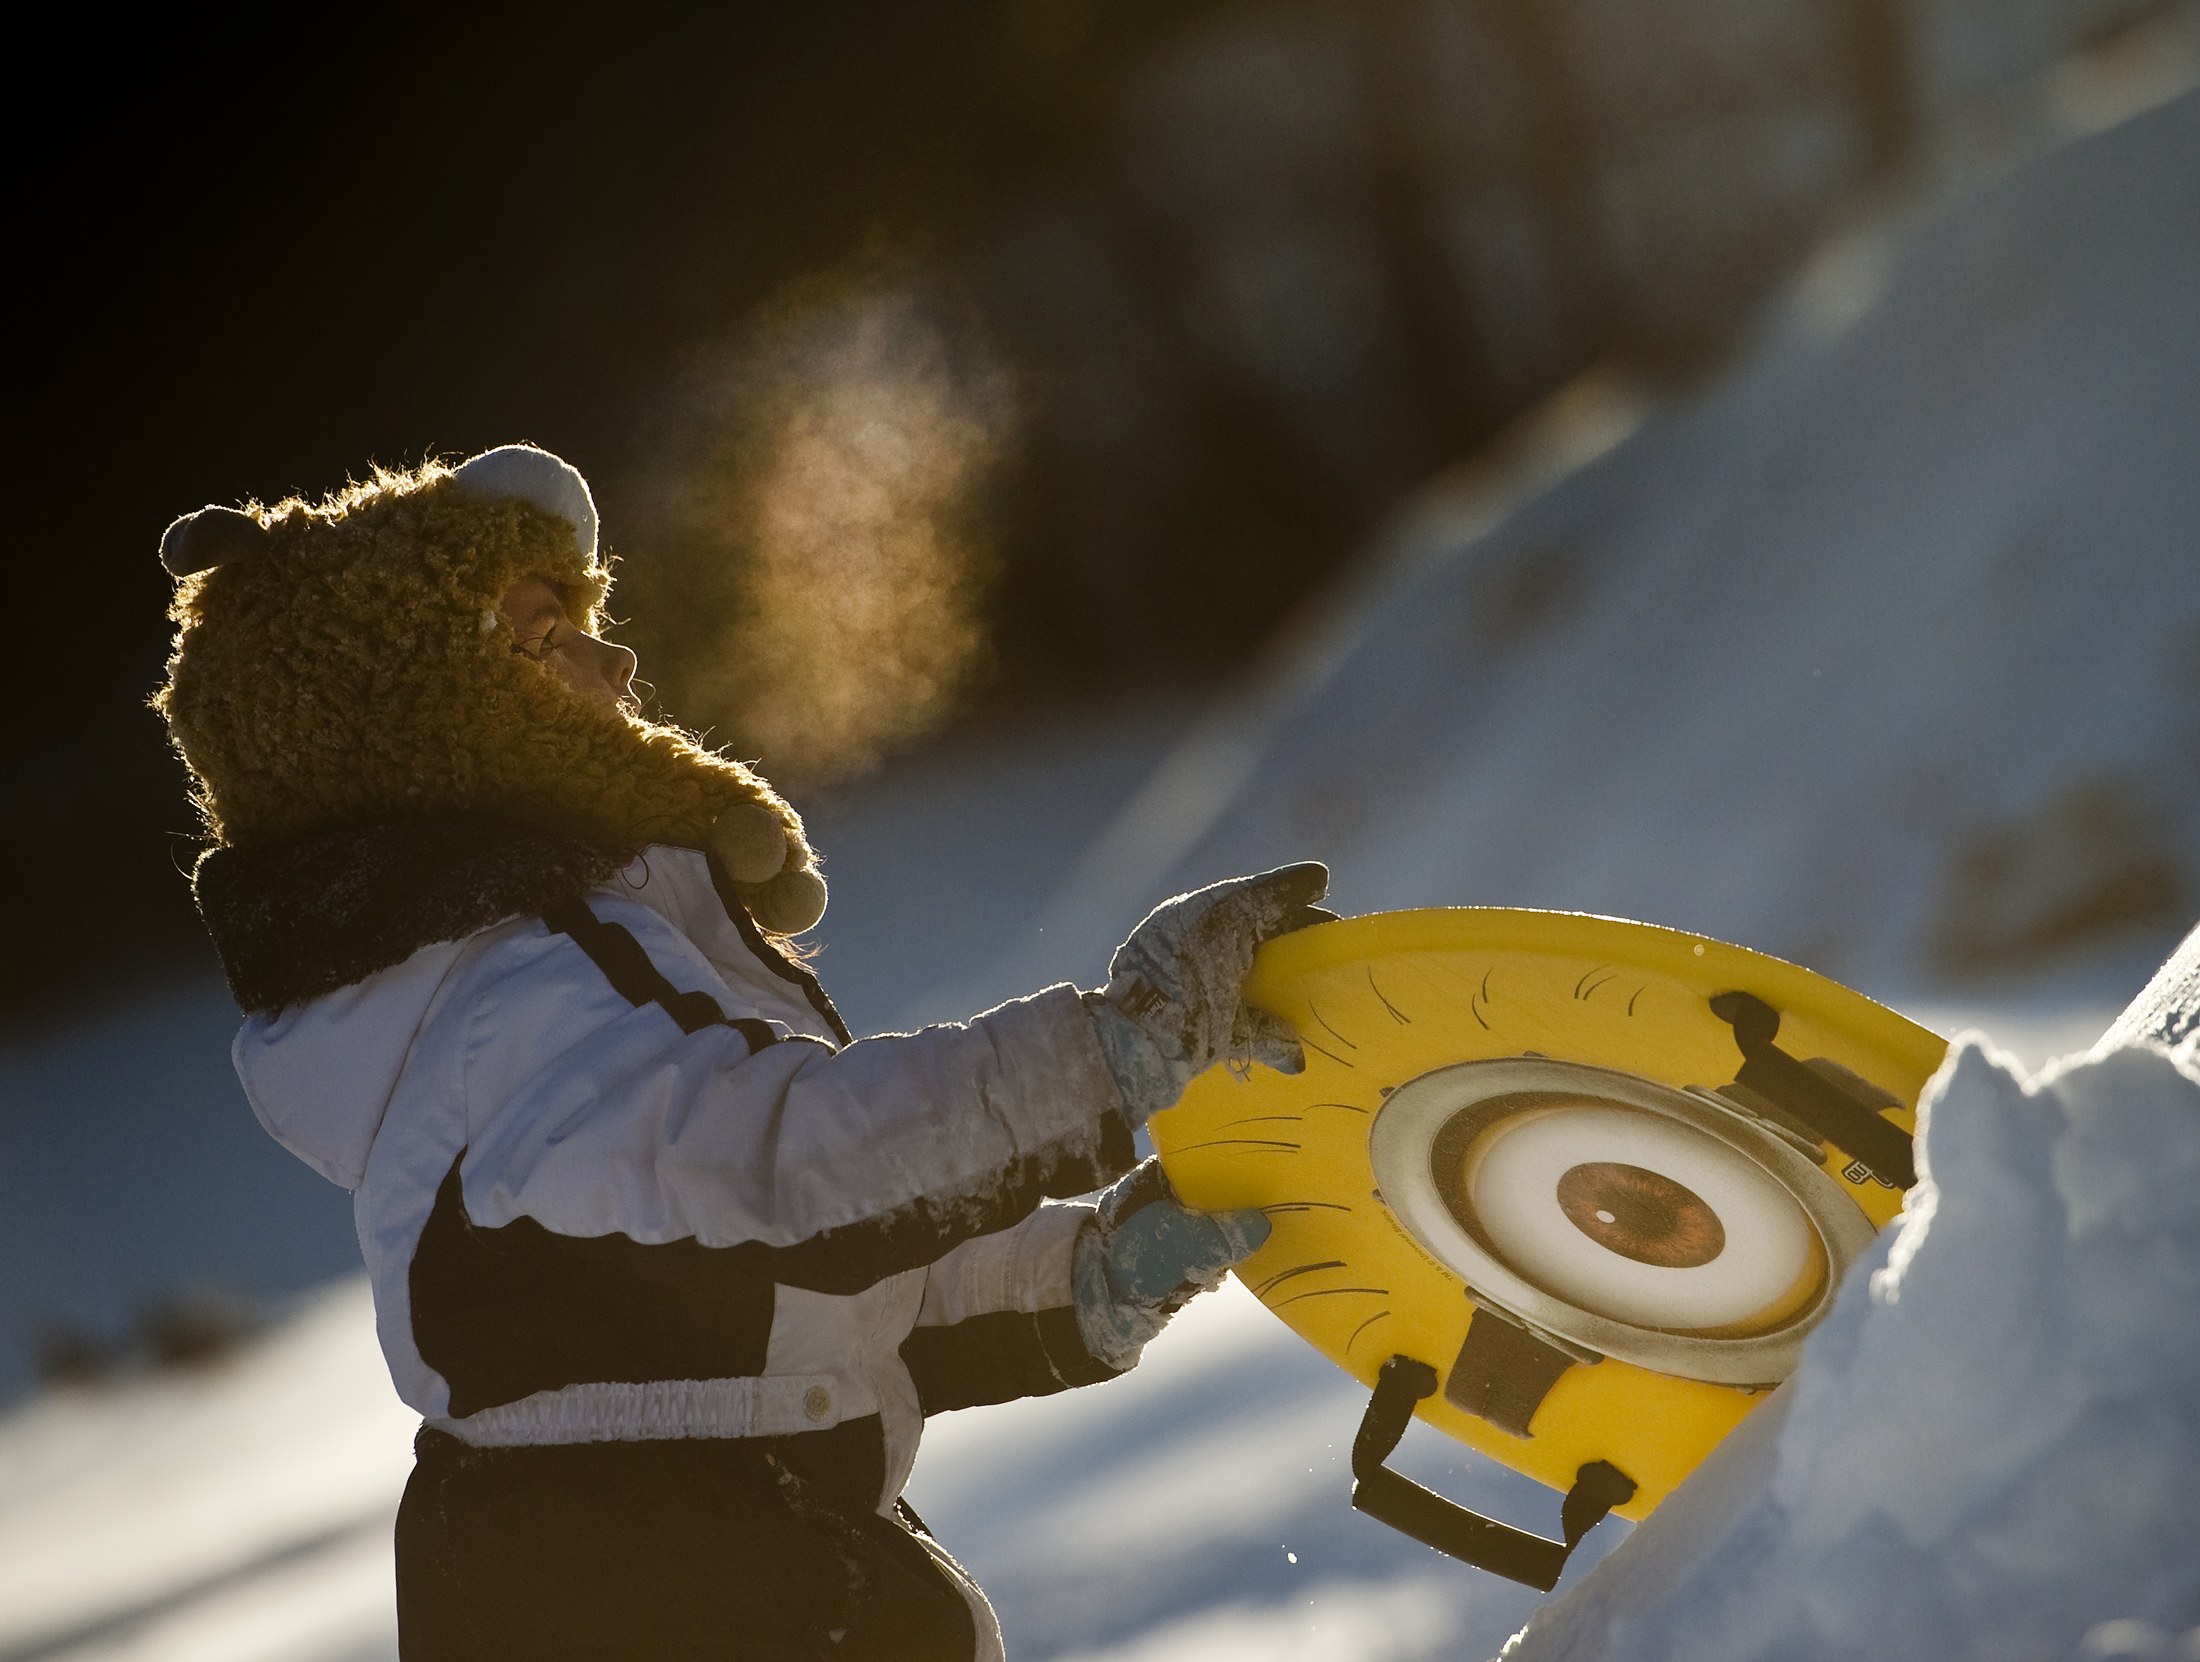 Alice Wilkinson, 8 of Hempfield township, looks up toward the top of a sledding hill at Hempfield Park on Sunday, Jan. 24, 2016, a day after winter storm Jonas.